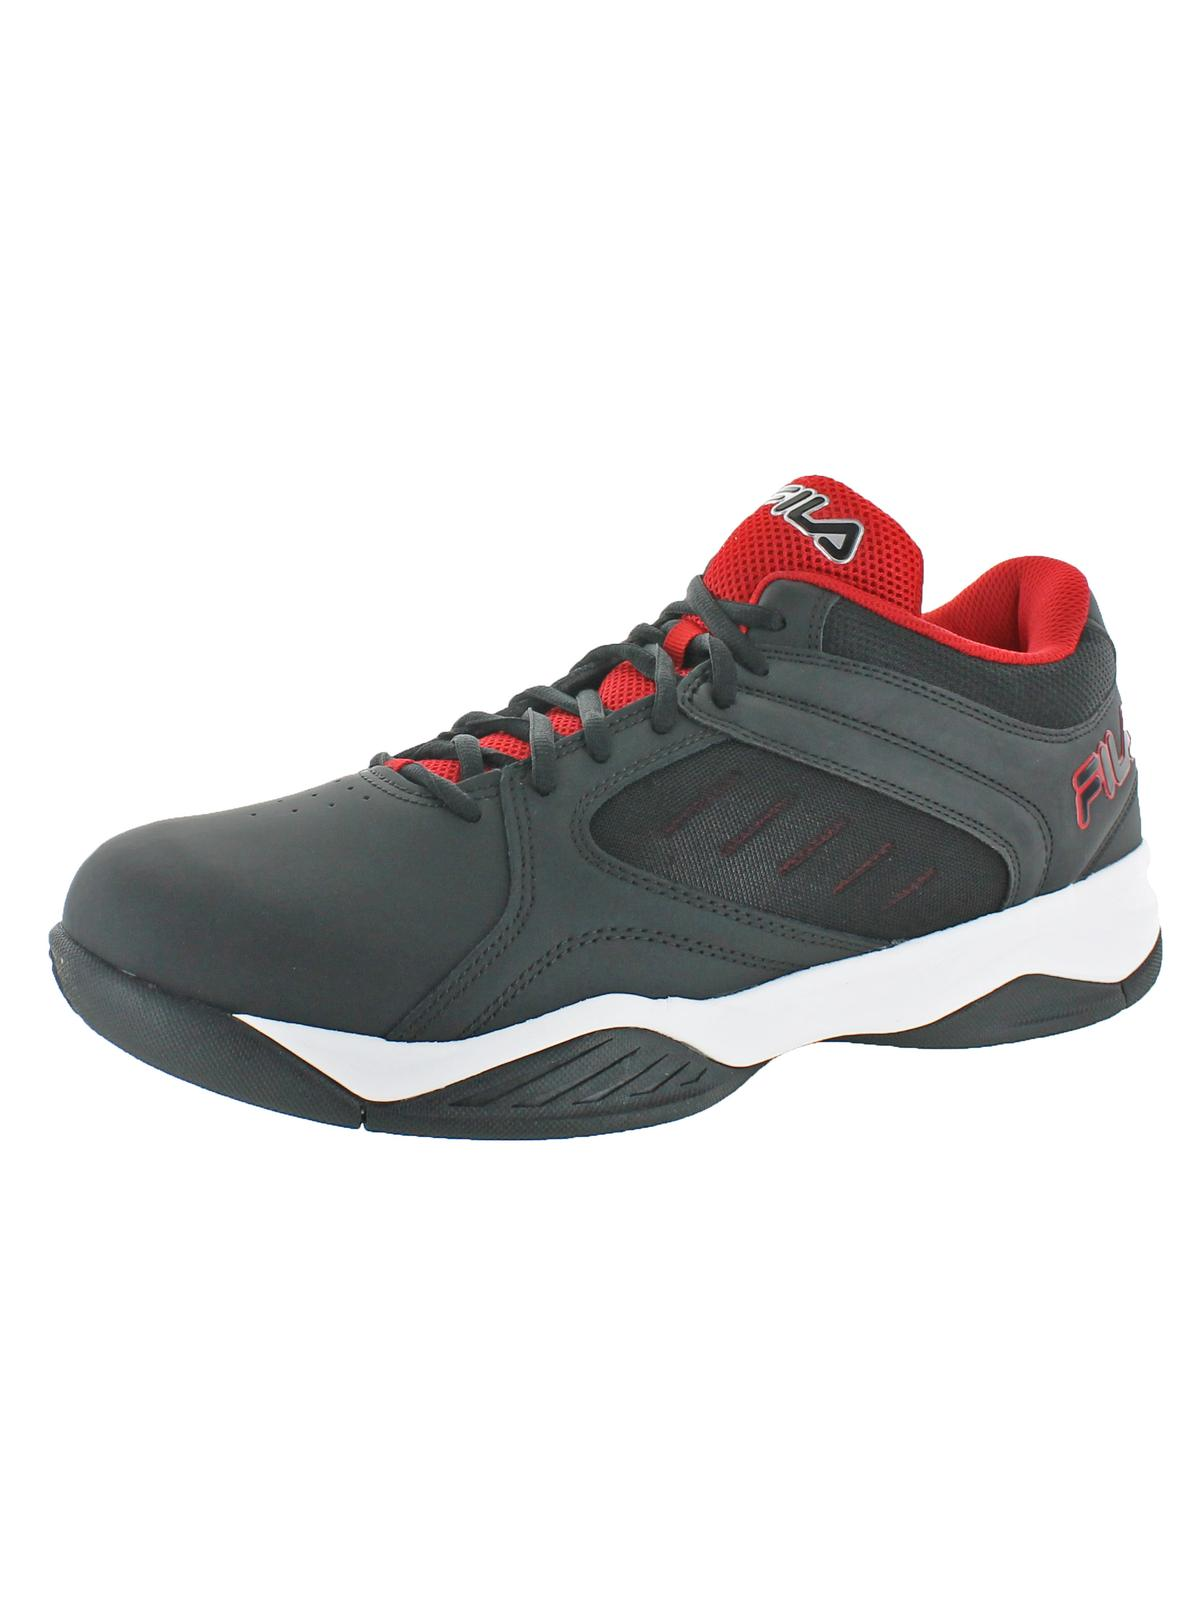 Fila Mens Bank Leather Lightweight Basketball Shoes by Fila